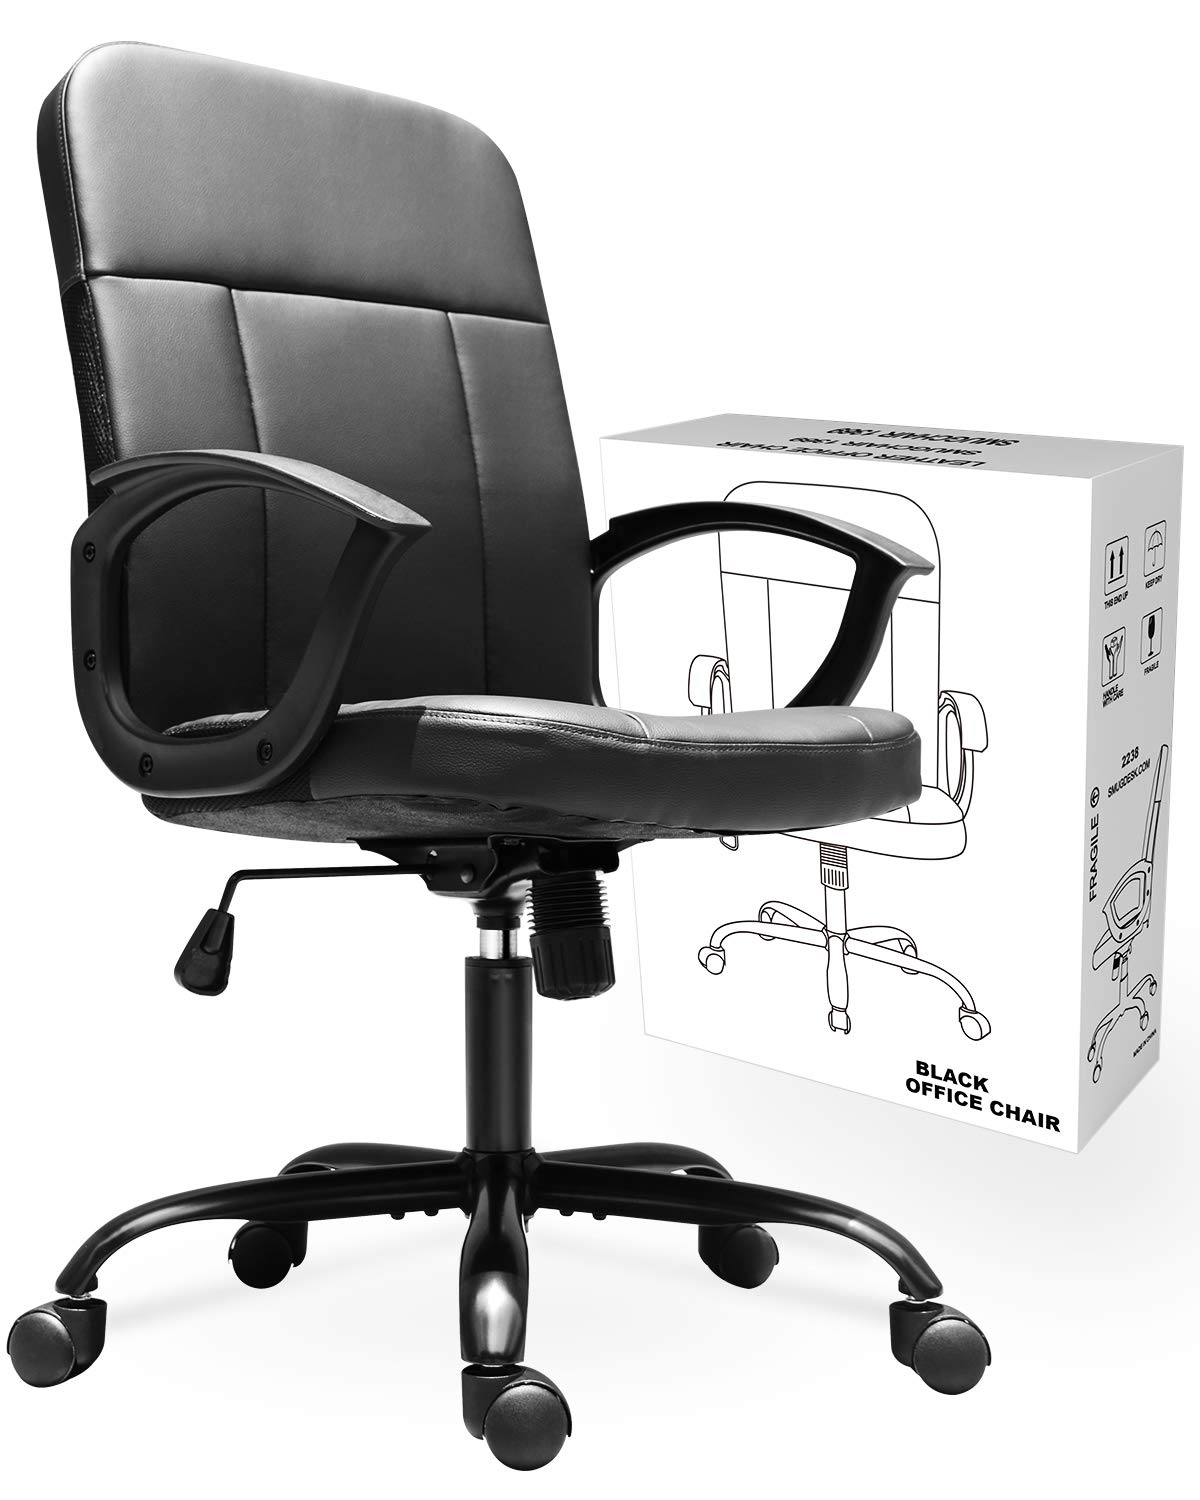 Office Chair, Mid Back Premium Bonded Leather Office Computer Swivel Desk Task Chair, Ergonomic Executive Chair with Lumbar Padding and Armrests by SMUGCHAIR